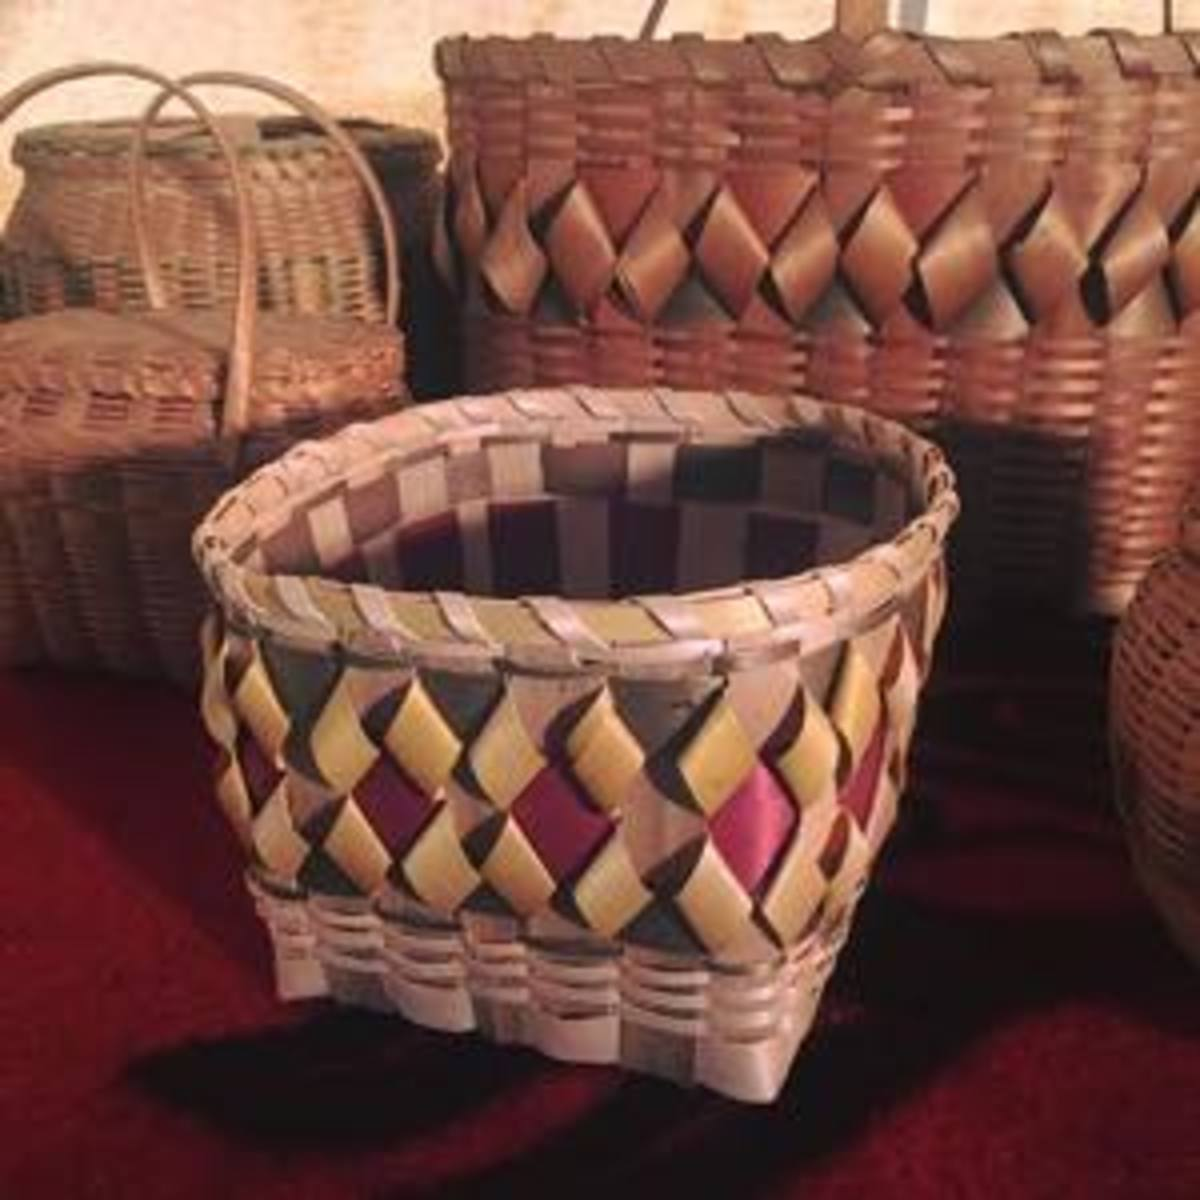 Participants who attended the seasonal day camps learned how to pound ash to make these traditional Ho-Chunk ash baskets.